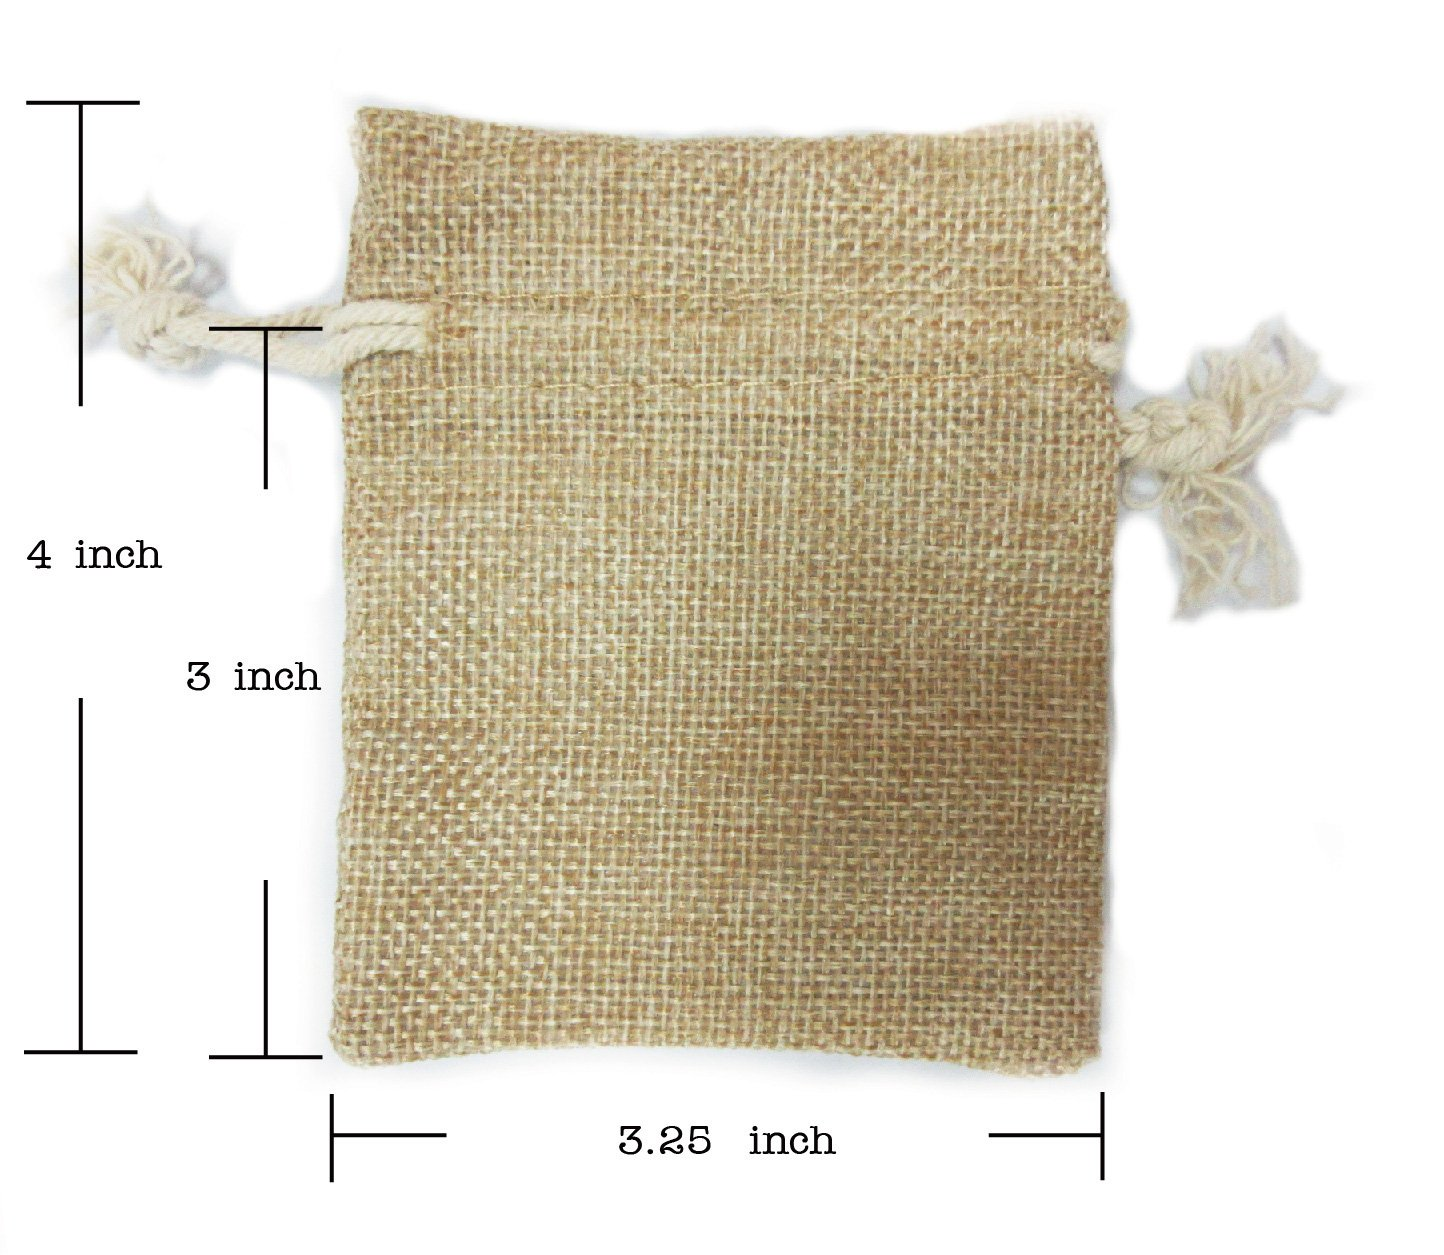 Ovee Lando Natural Color Burlap Bag with Drawstring Closure for Arts & Crafts Projects, Gift Packaging, Presents, Snacks & Jewelry (30 Pack) by Ovee Lando (Image #2)